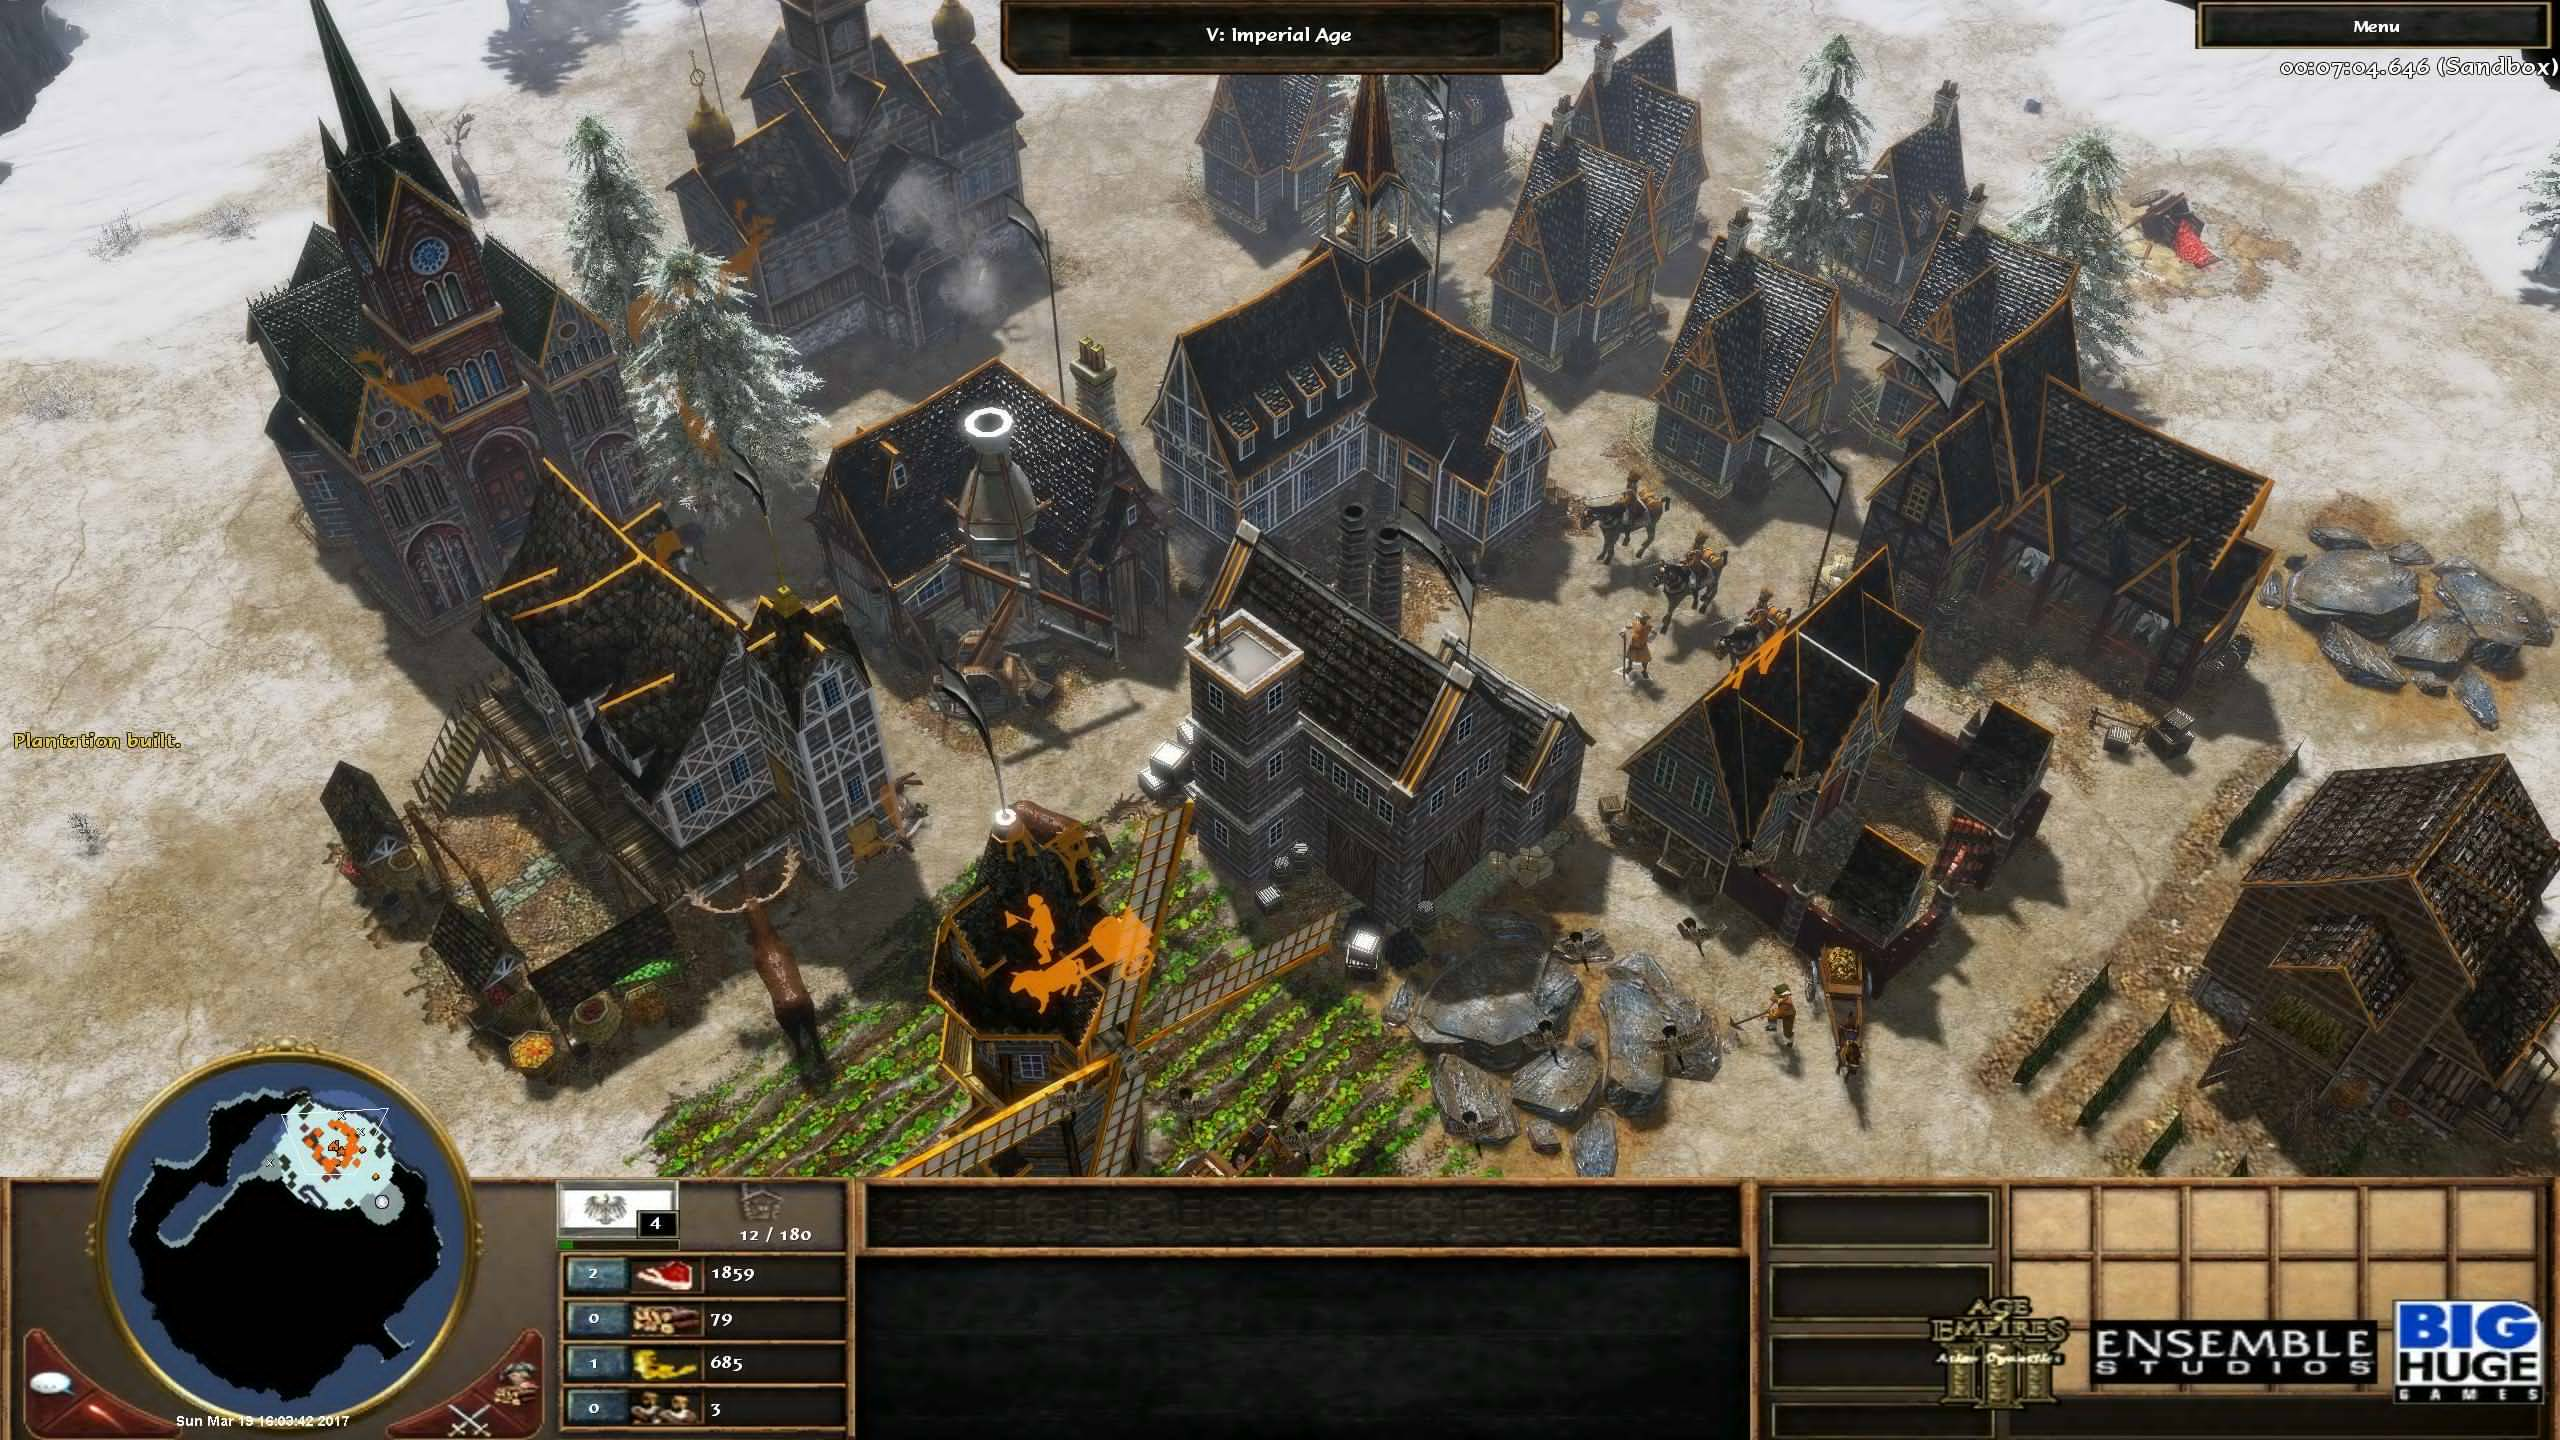 German Imperial Age image - Graphics Mod (Age of Empires III) for Age of Empires III: The Asian Dynasties - Mod DB